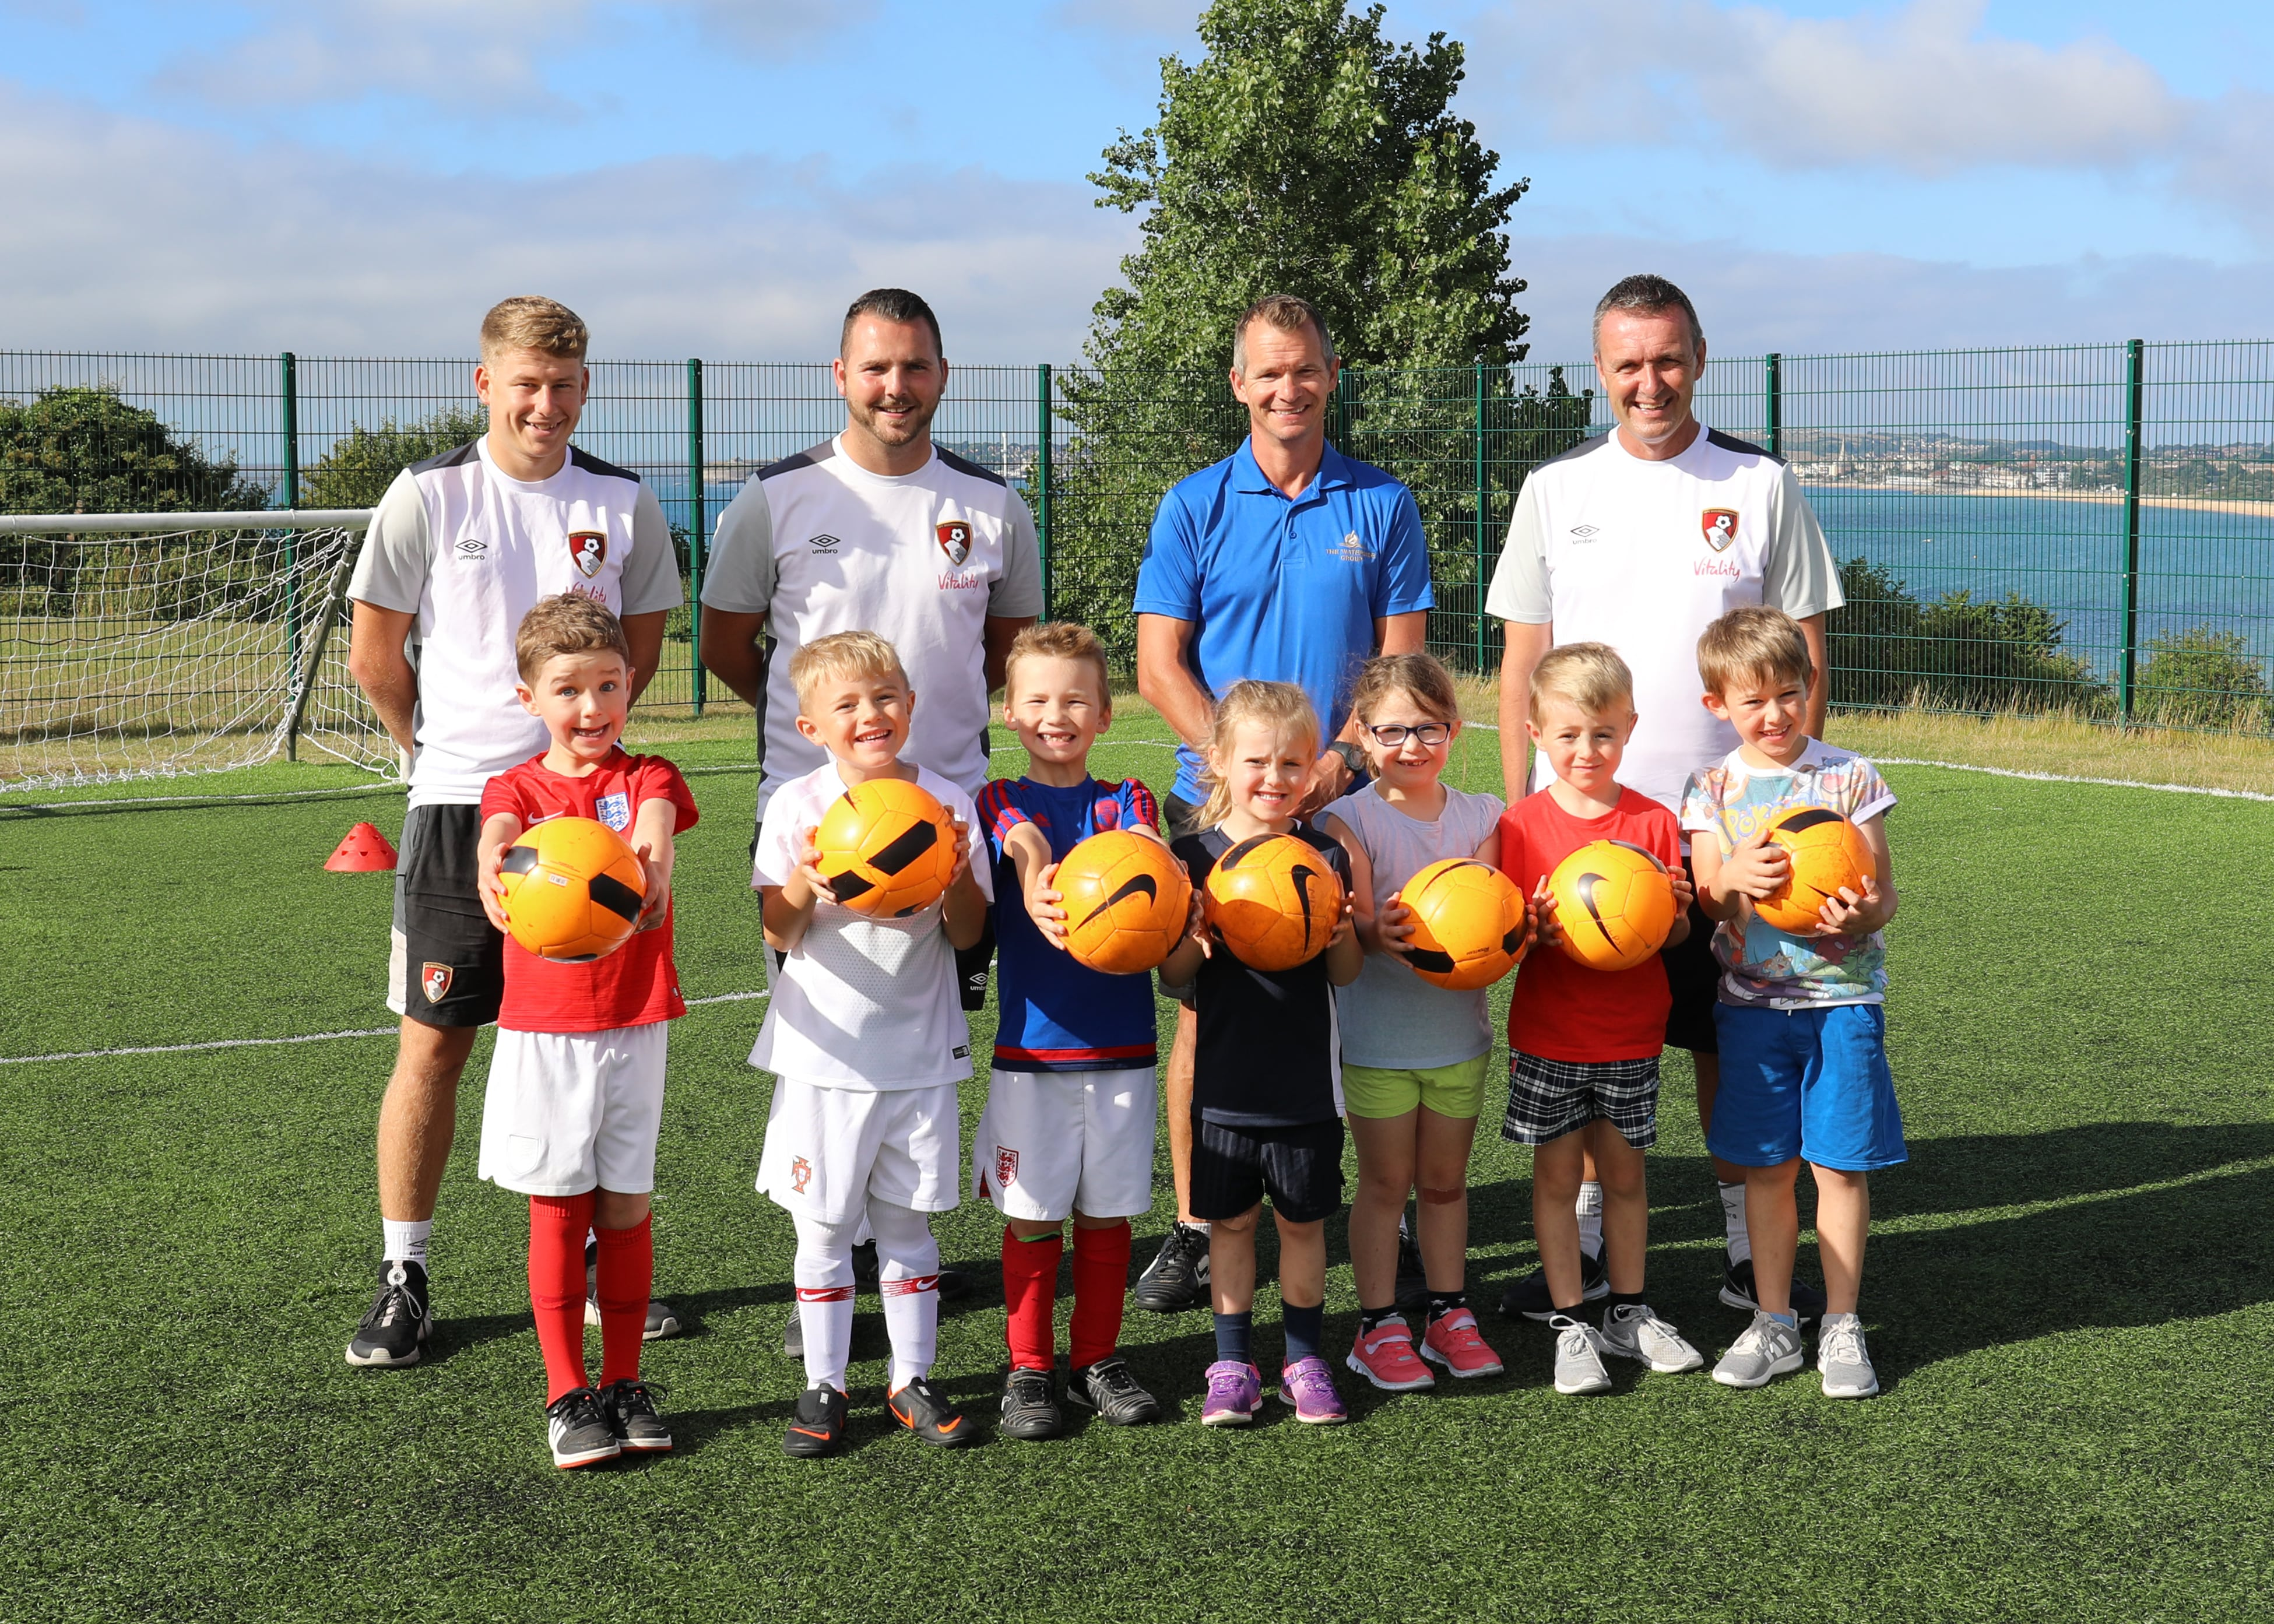 Two AFCB Coaches, Phil Hanger (Waterside) and Steve Cuss (AFCB) with a coaching session